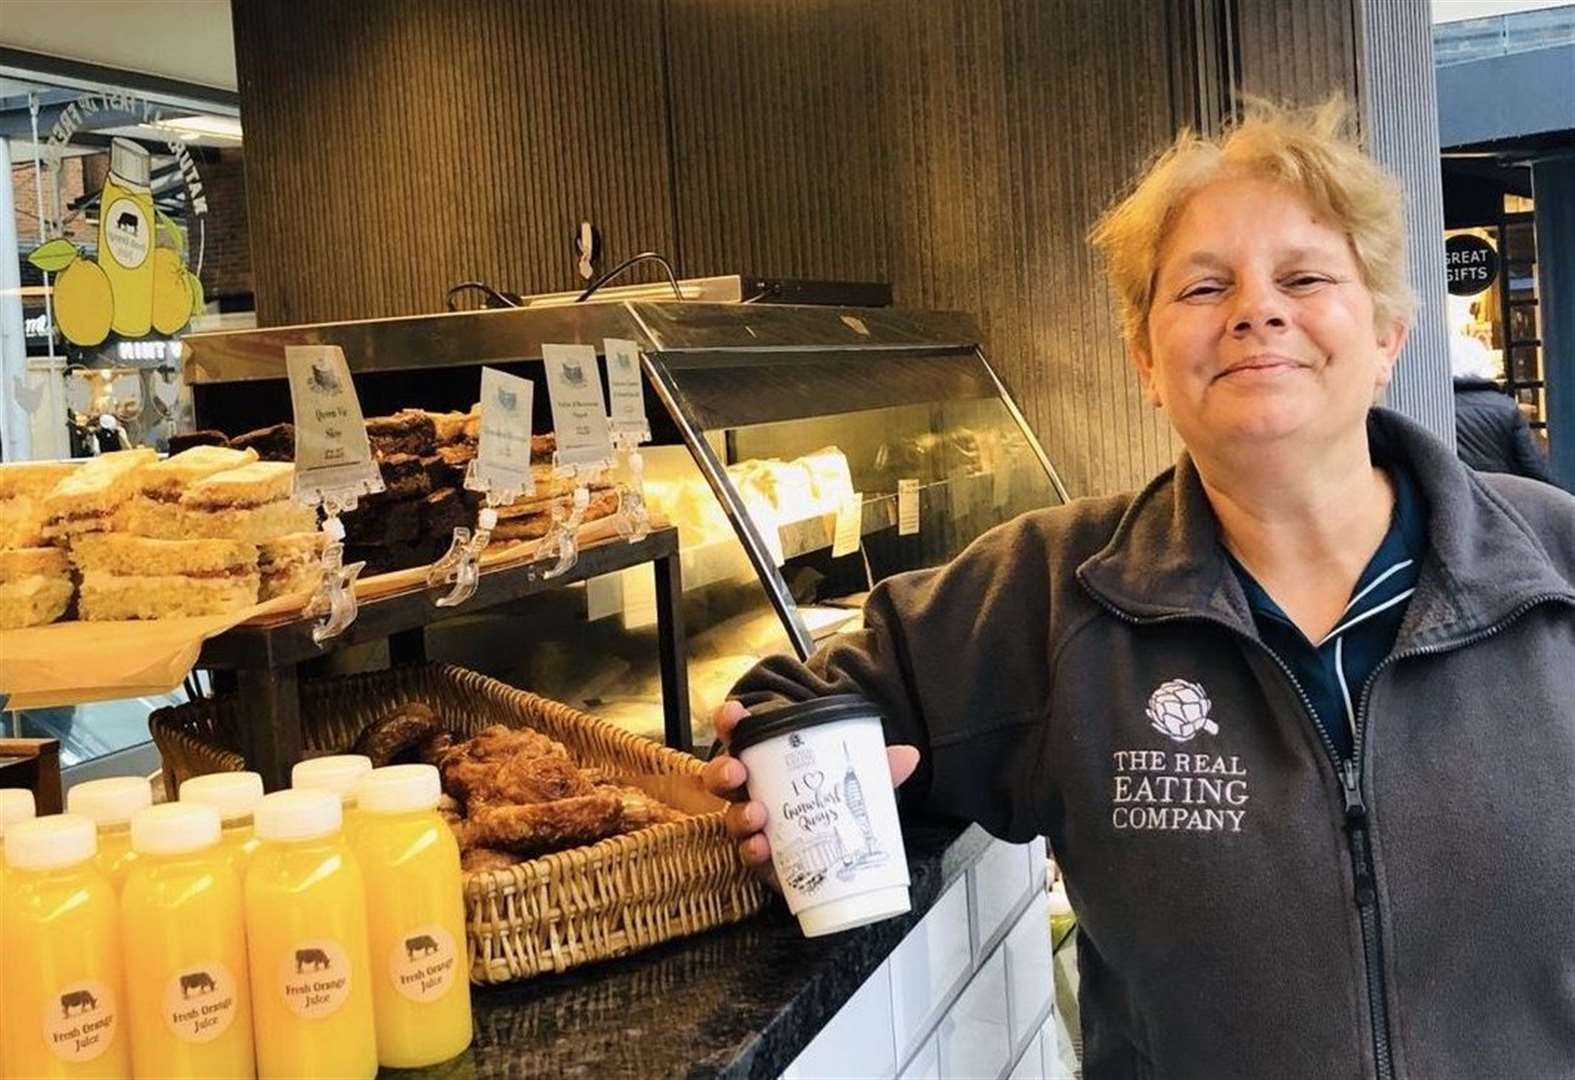 Cafe chain to open first Kent branch